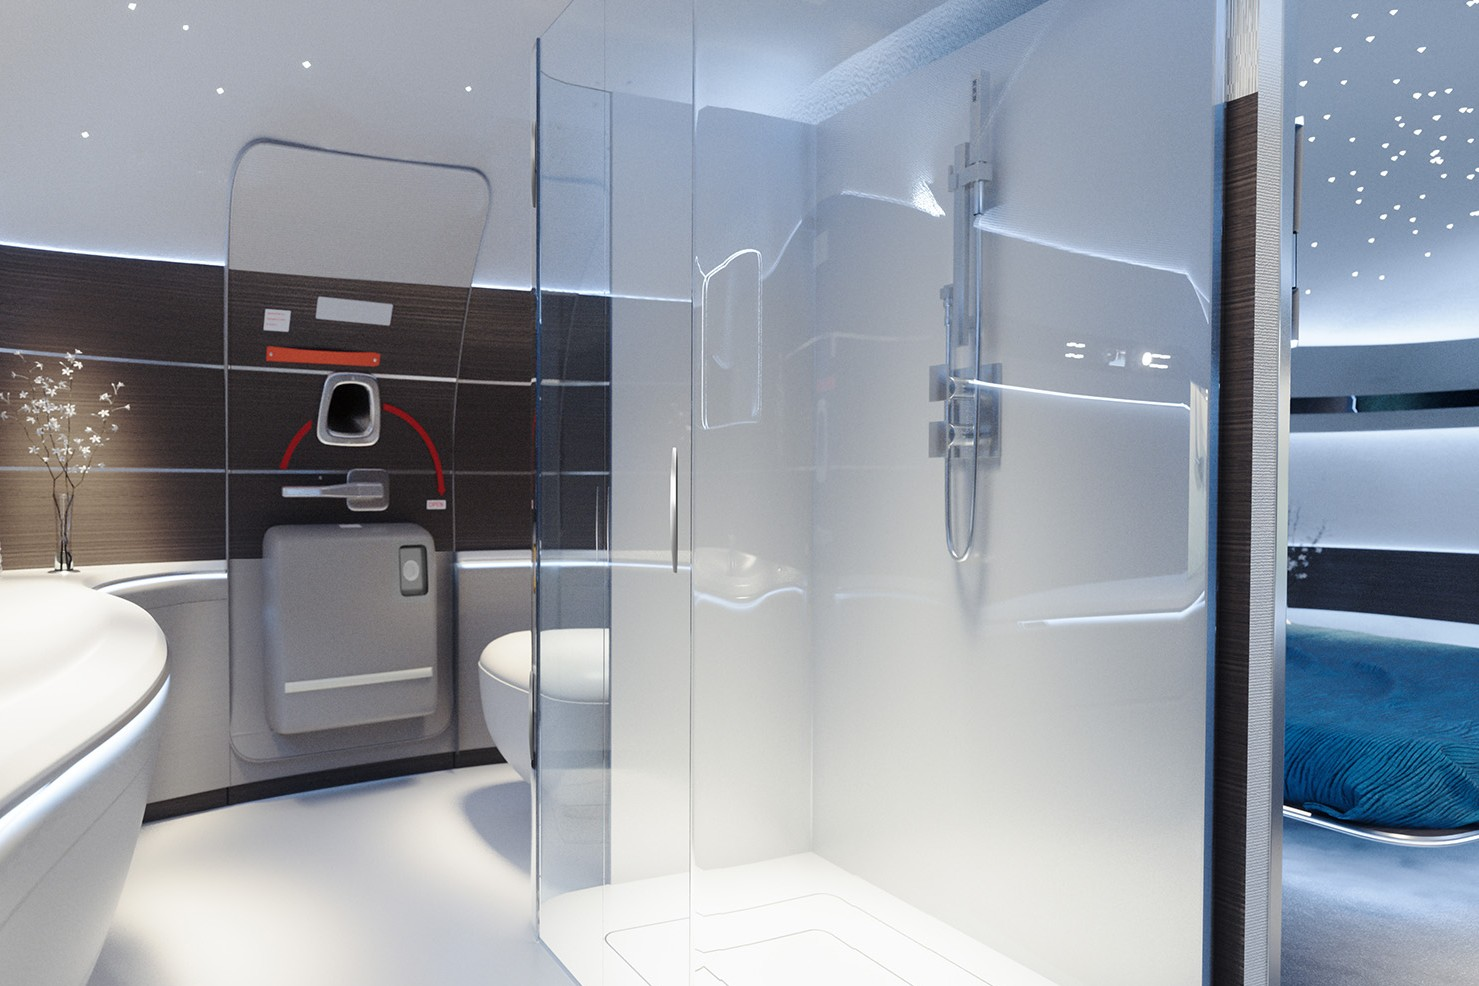 Luxury private jet interior with a dream bedroom and shower for sale